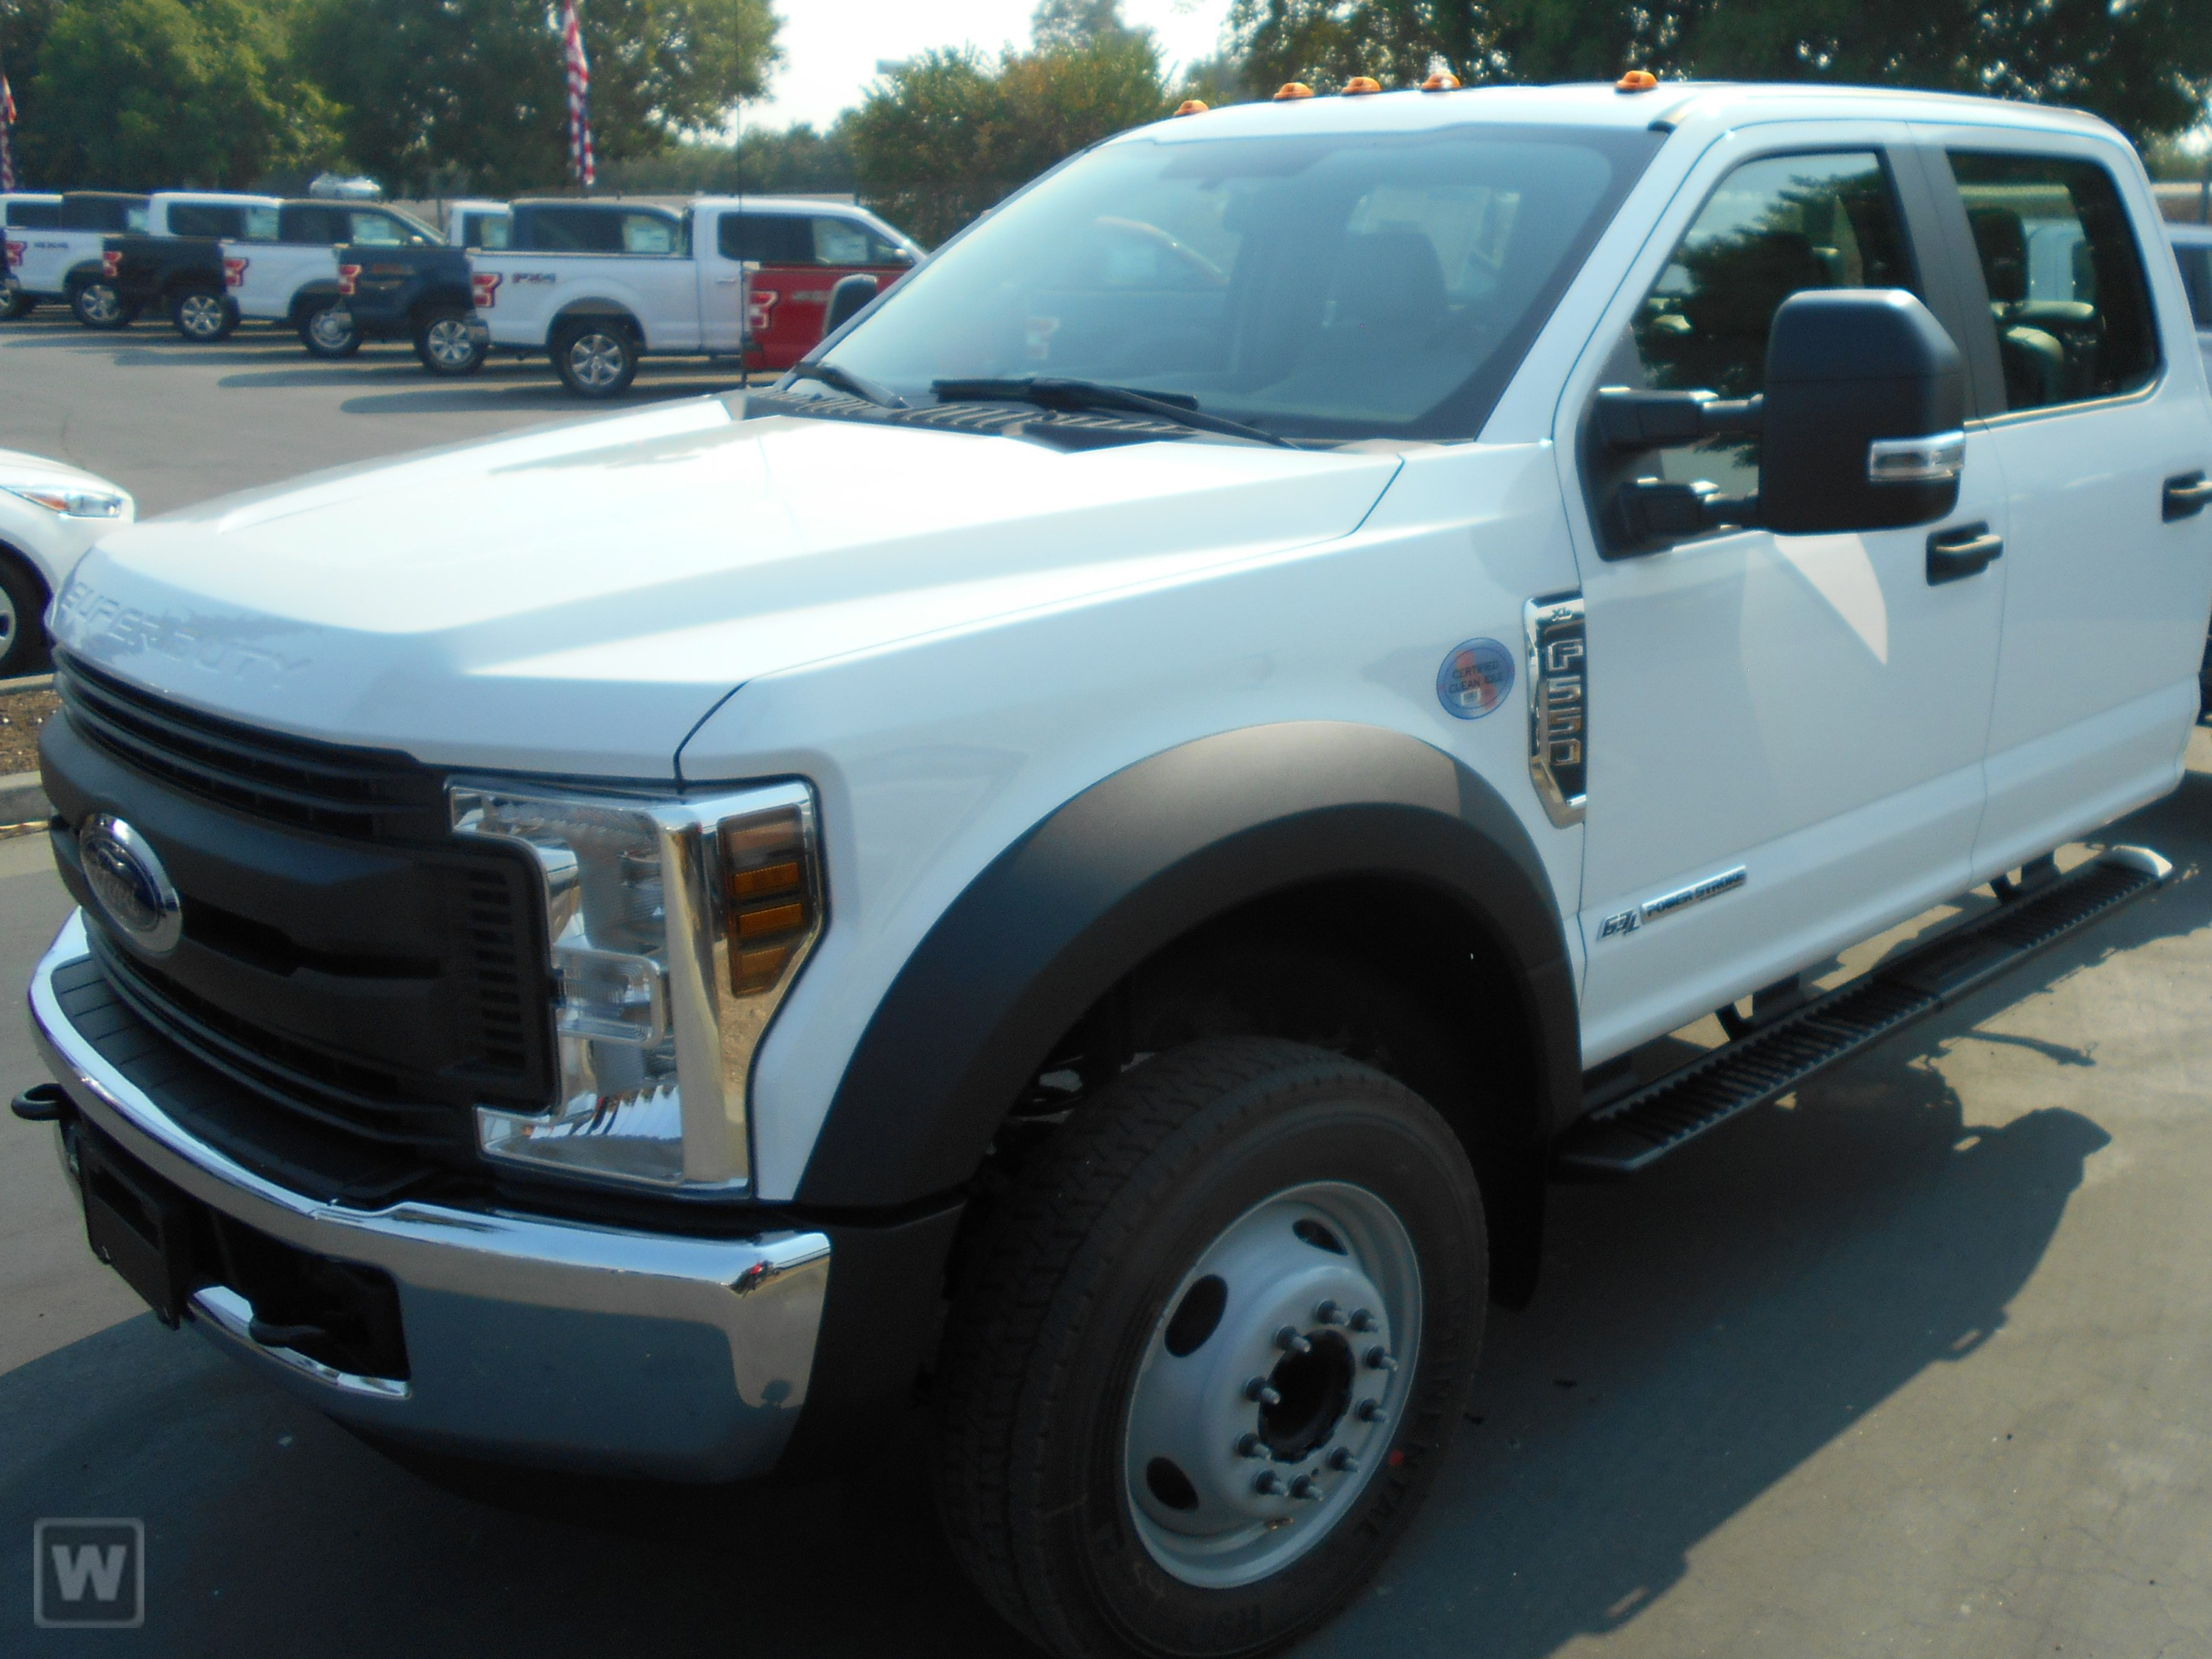 2019 F-550 Crew Cab DRW 4x4, Scelzi Contractor Body #C47260 - photo 1